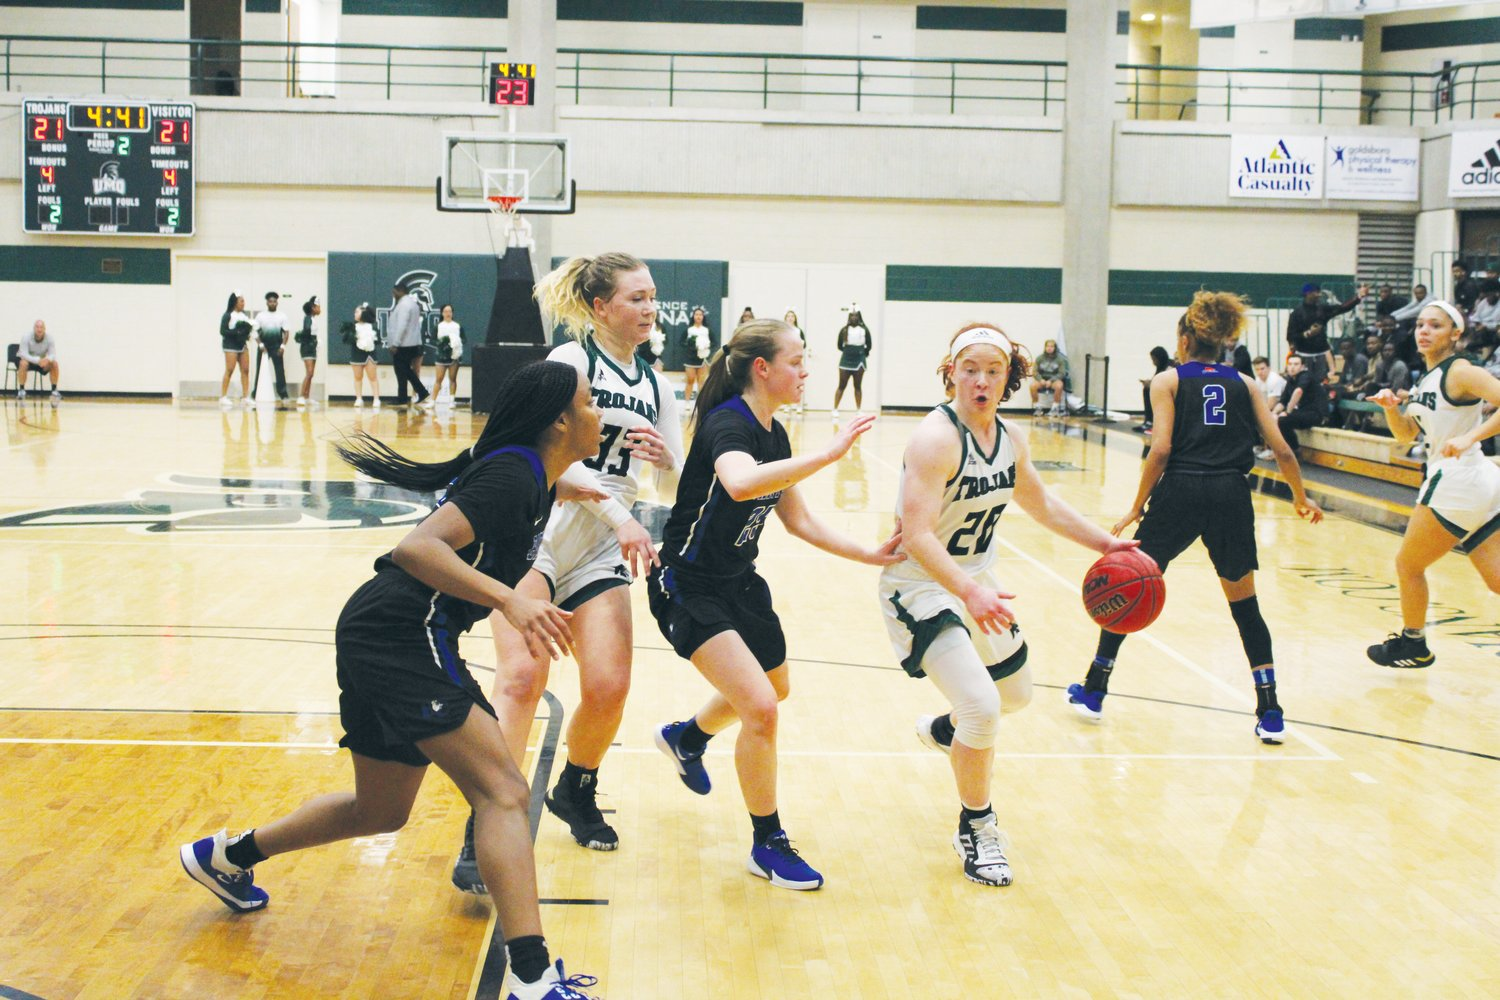 University of Mount Olive point guard Kelly Post drives to the basket during a recent home game. The Trojan women remain in position to host an opening-round game in the season-ending Conference Carolinas women's basketball tournament.